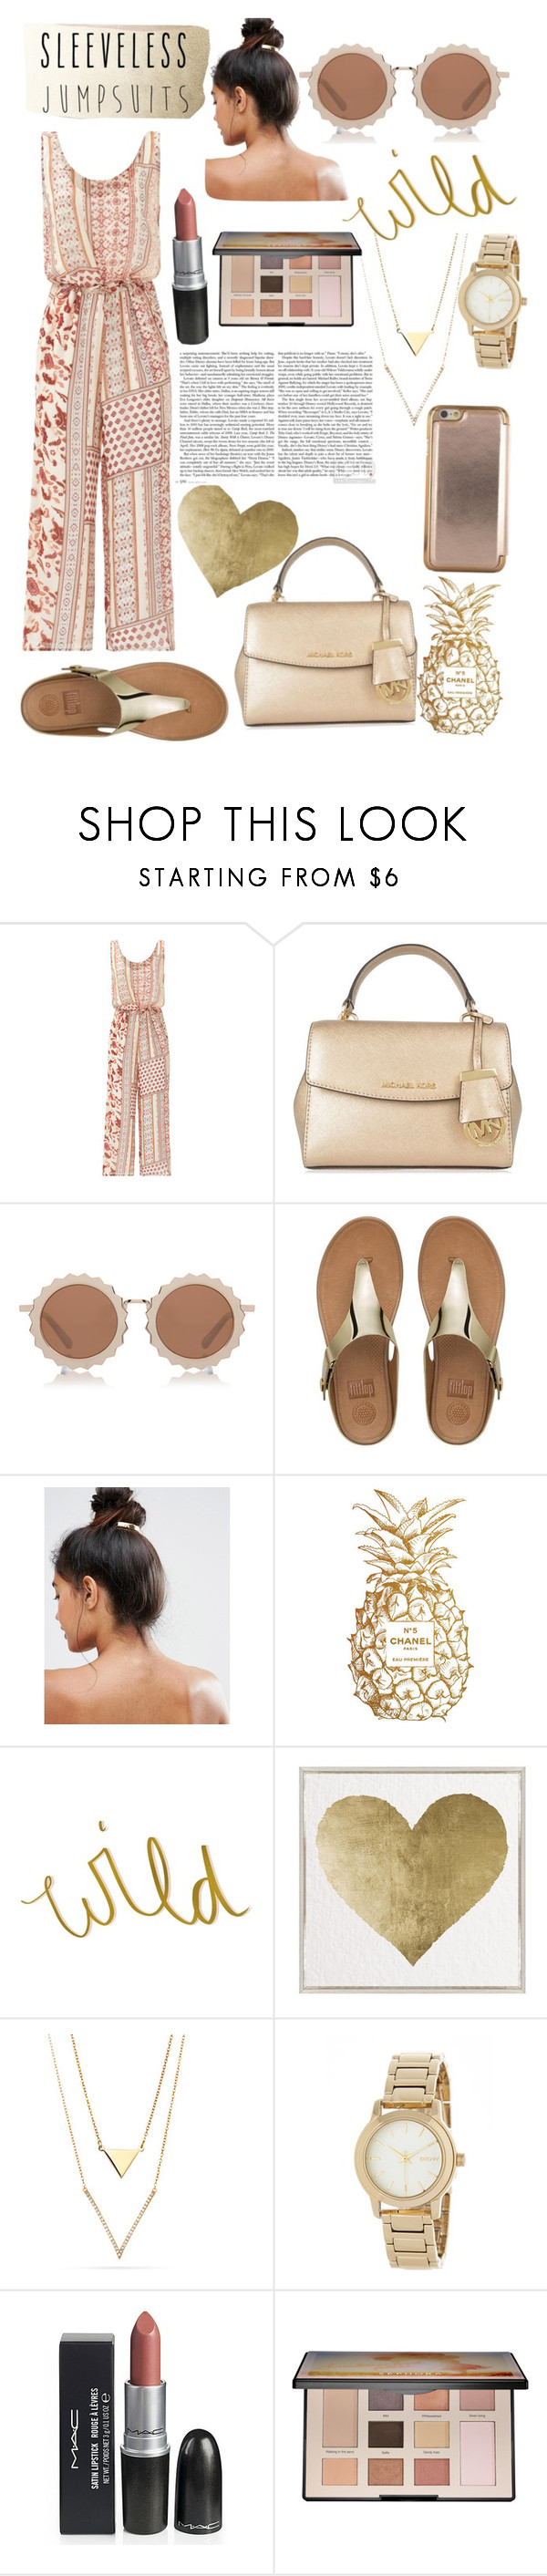 """J U M P S U I T🌞"" by beautifullyrandom ❤ liked on Polyvore featuring Bailey 44, MICHAEL Michael Kors, House of Holland, FitFlop, Kitsch, Chanel, Oliver Gal Artist Co., DKNY, Sephora Collection and Ted Baker"